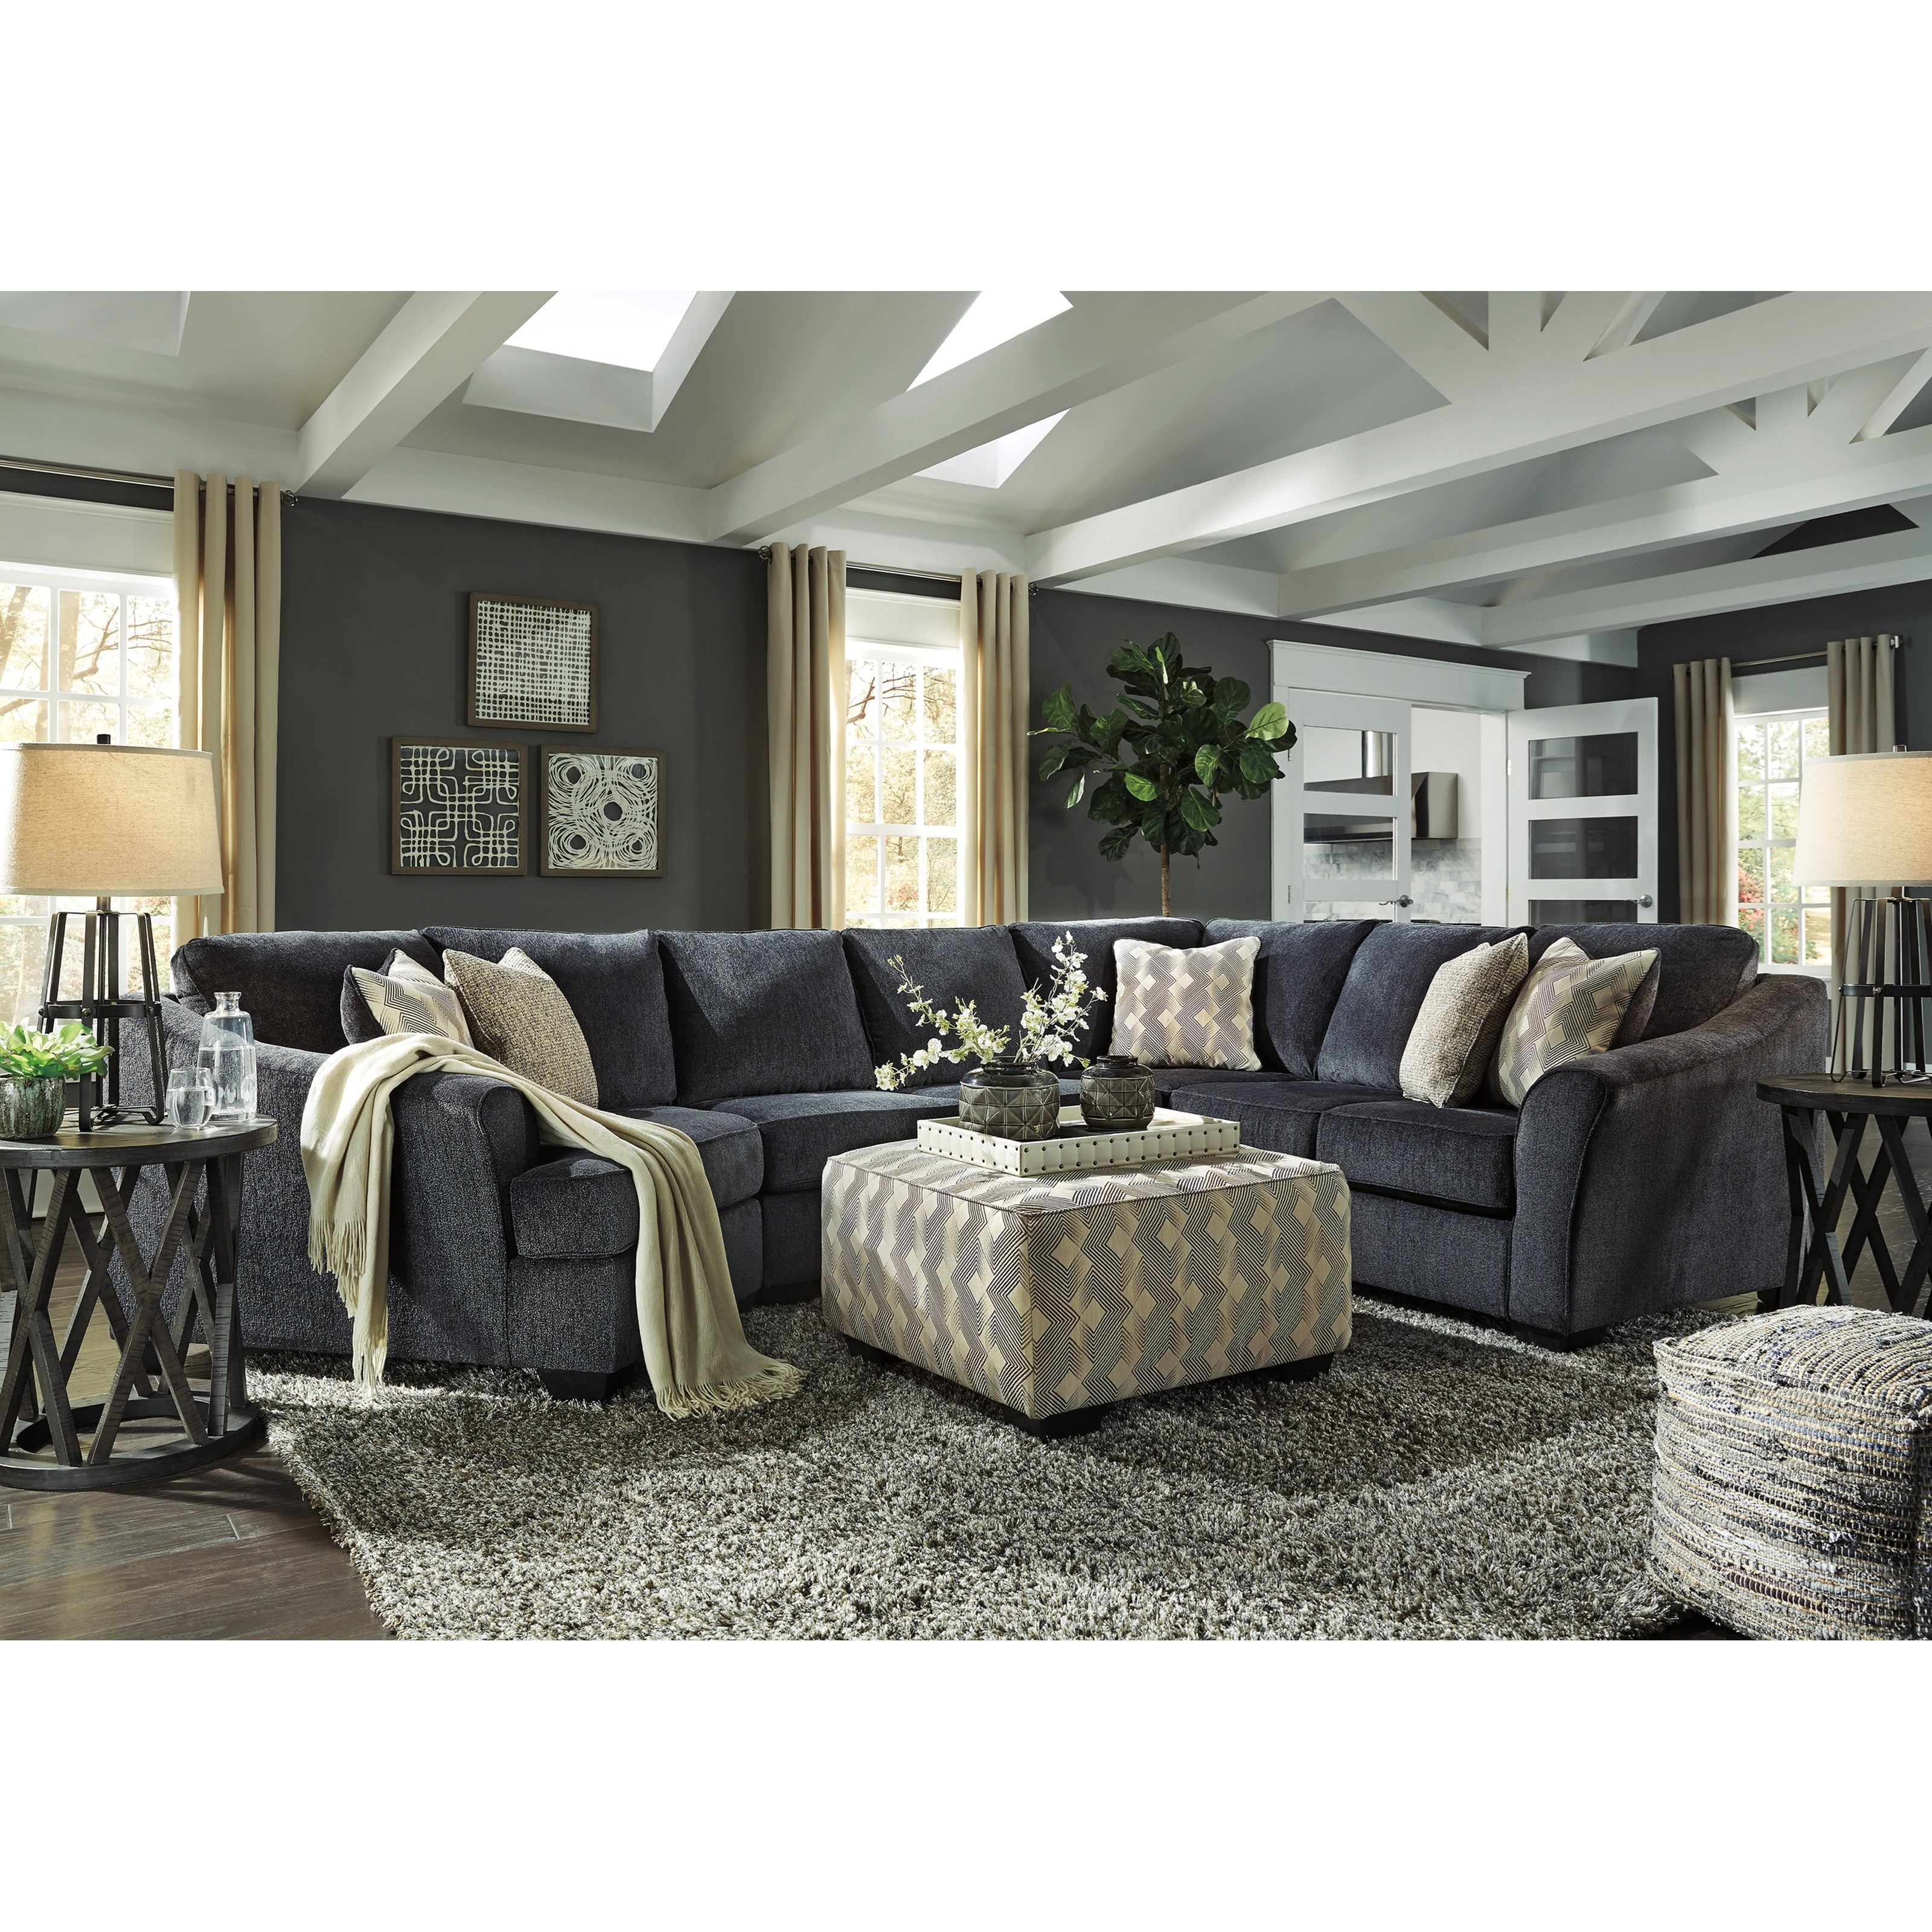 Signature Design By Ashley Eltmann Stationary Living Room